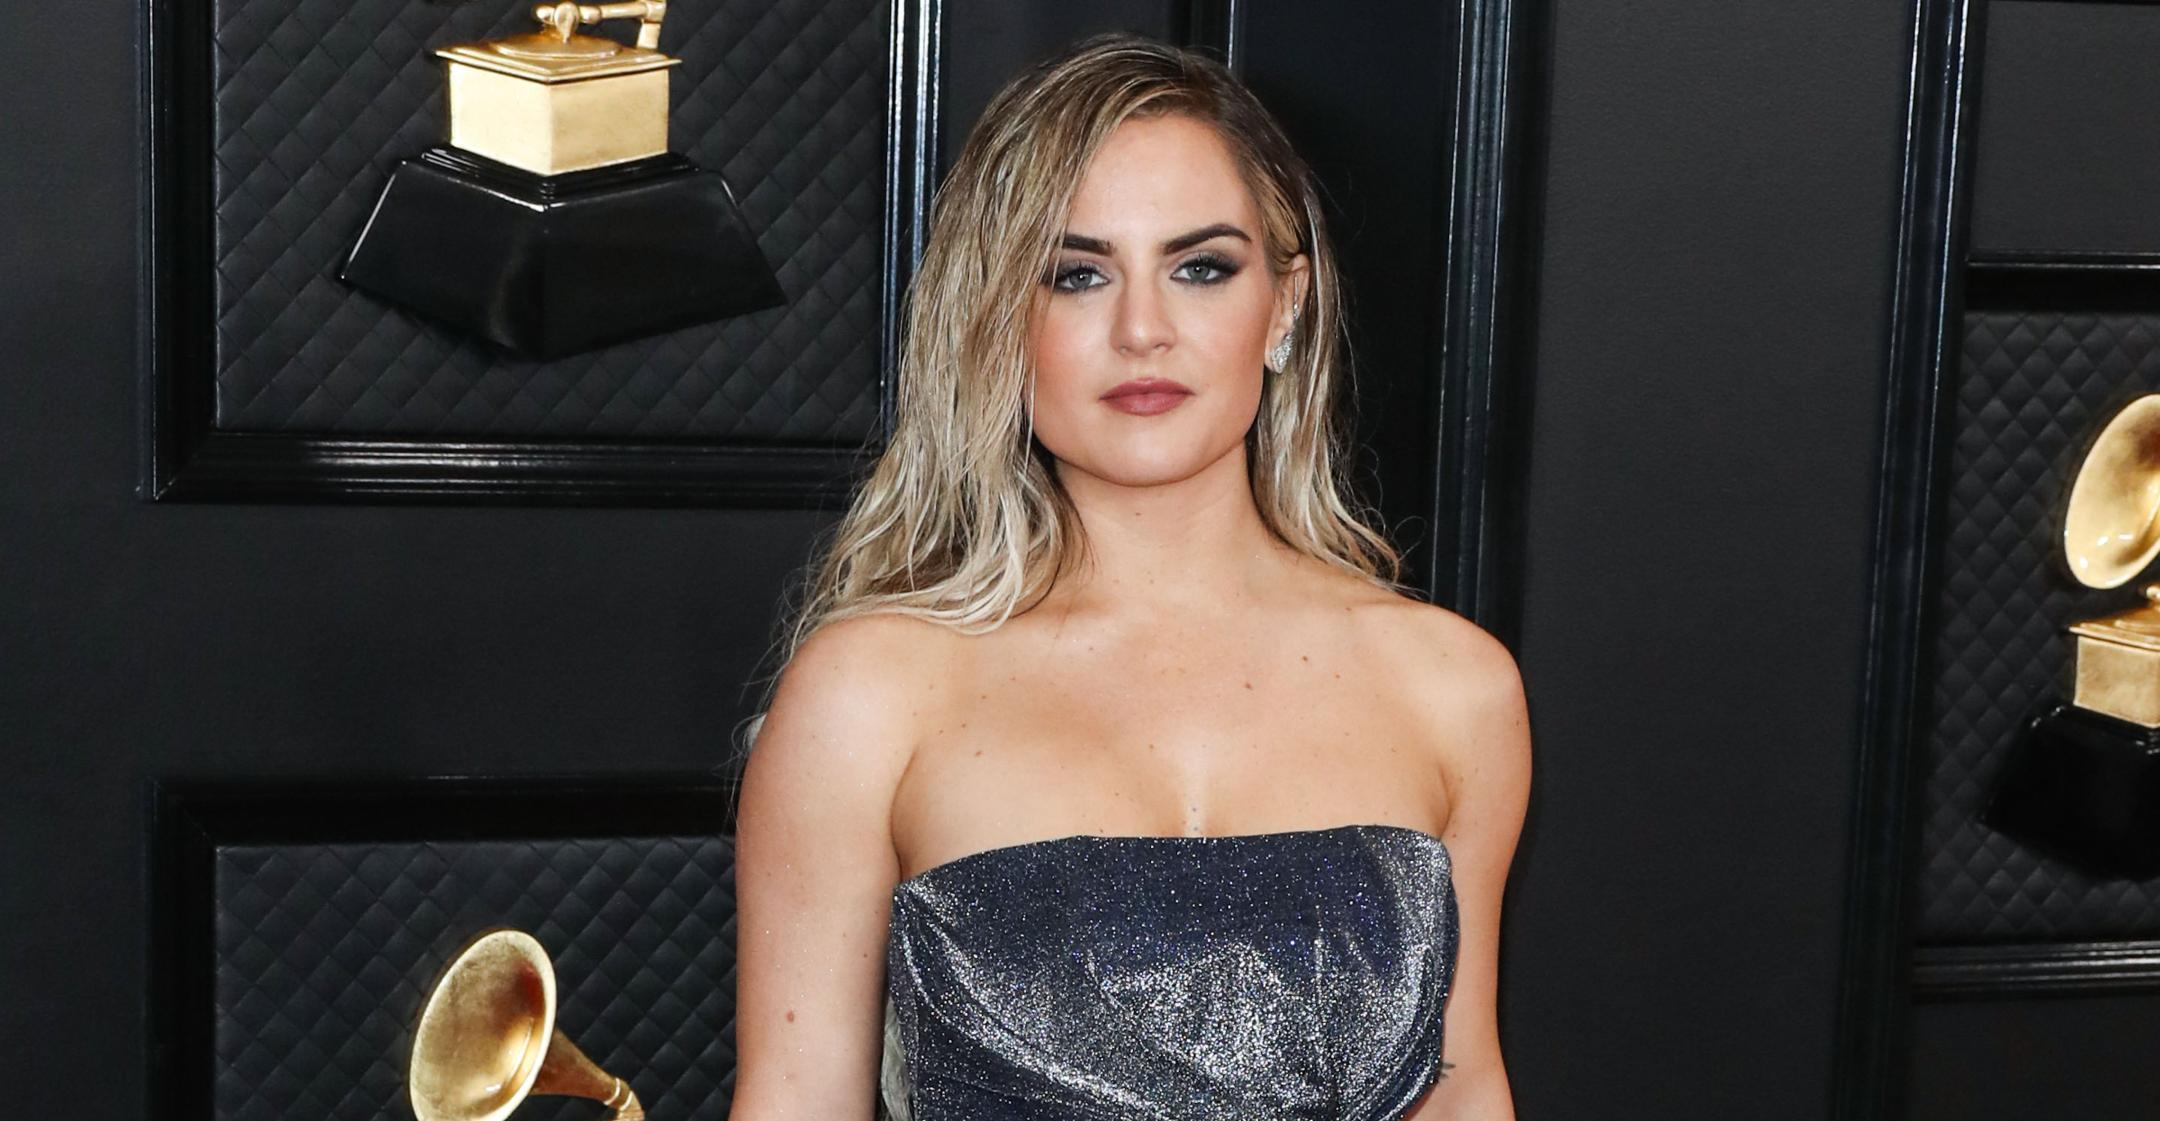 singer jojo reveals the masked singer helped conquer stage fright find confidence again